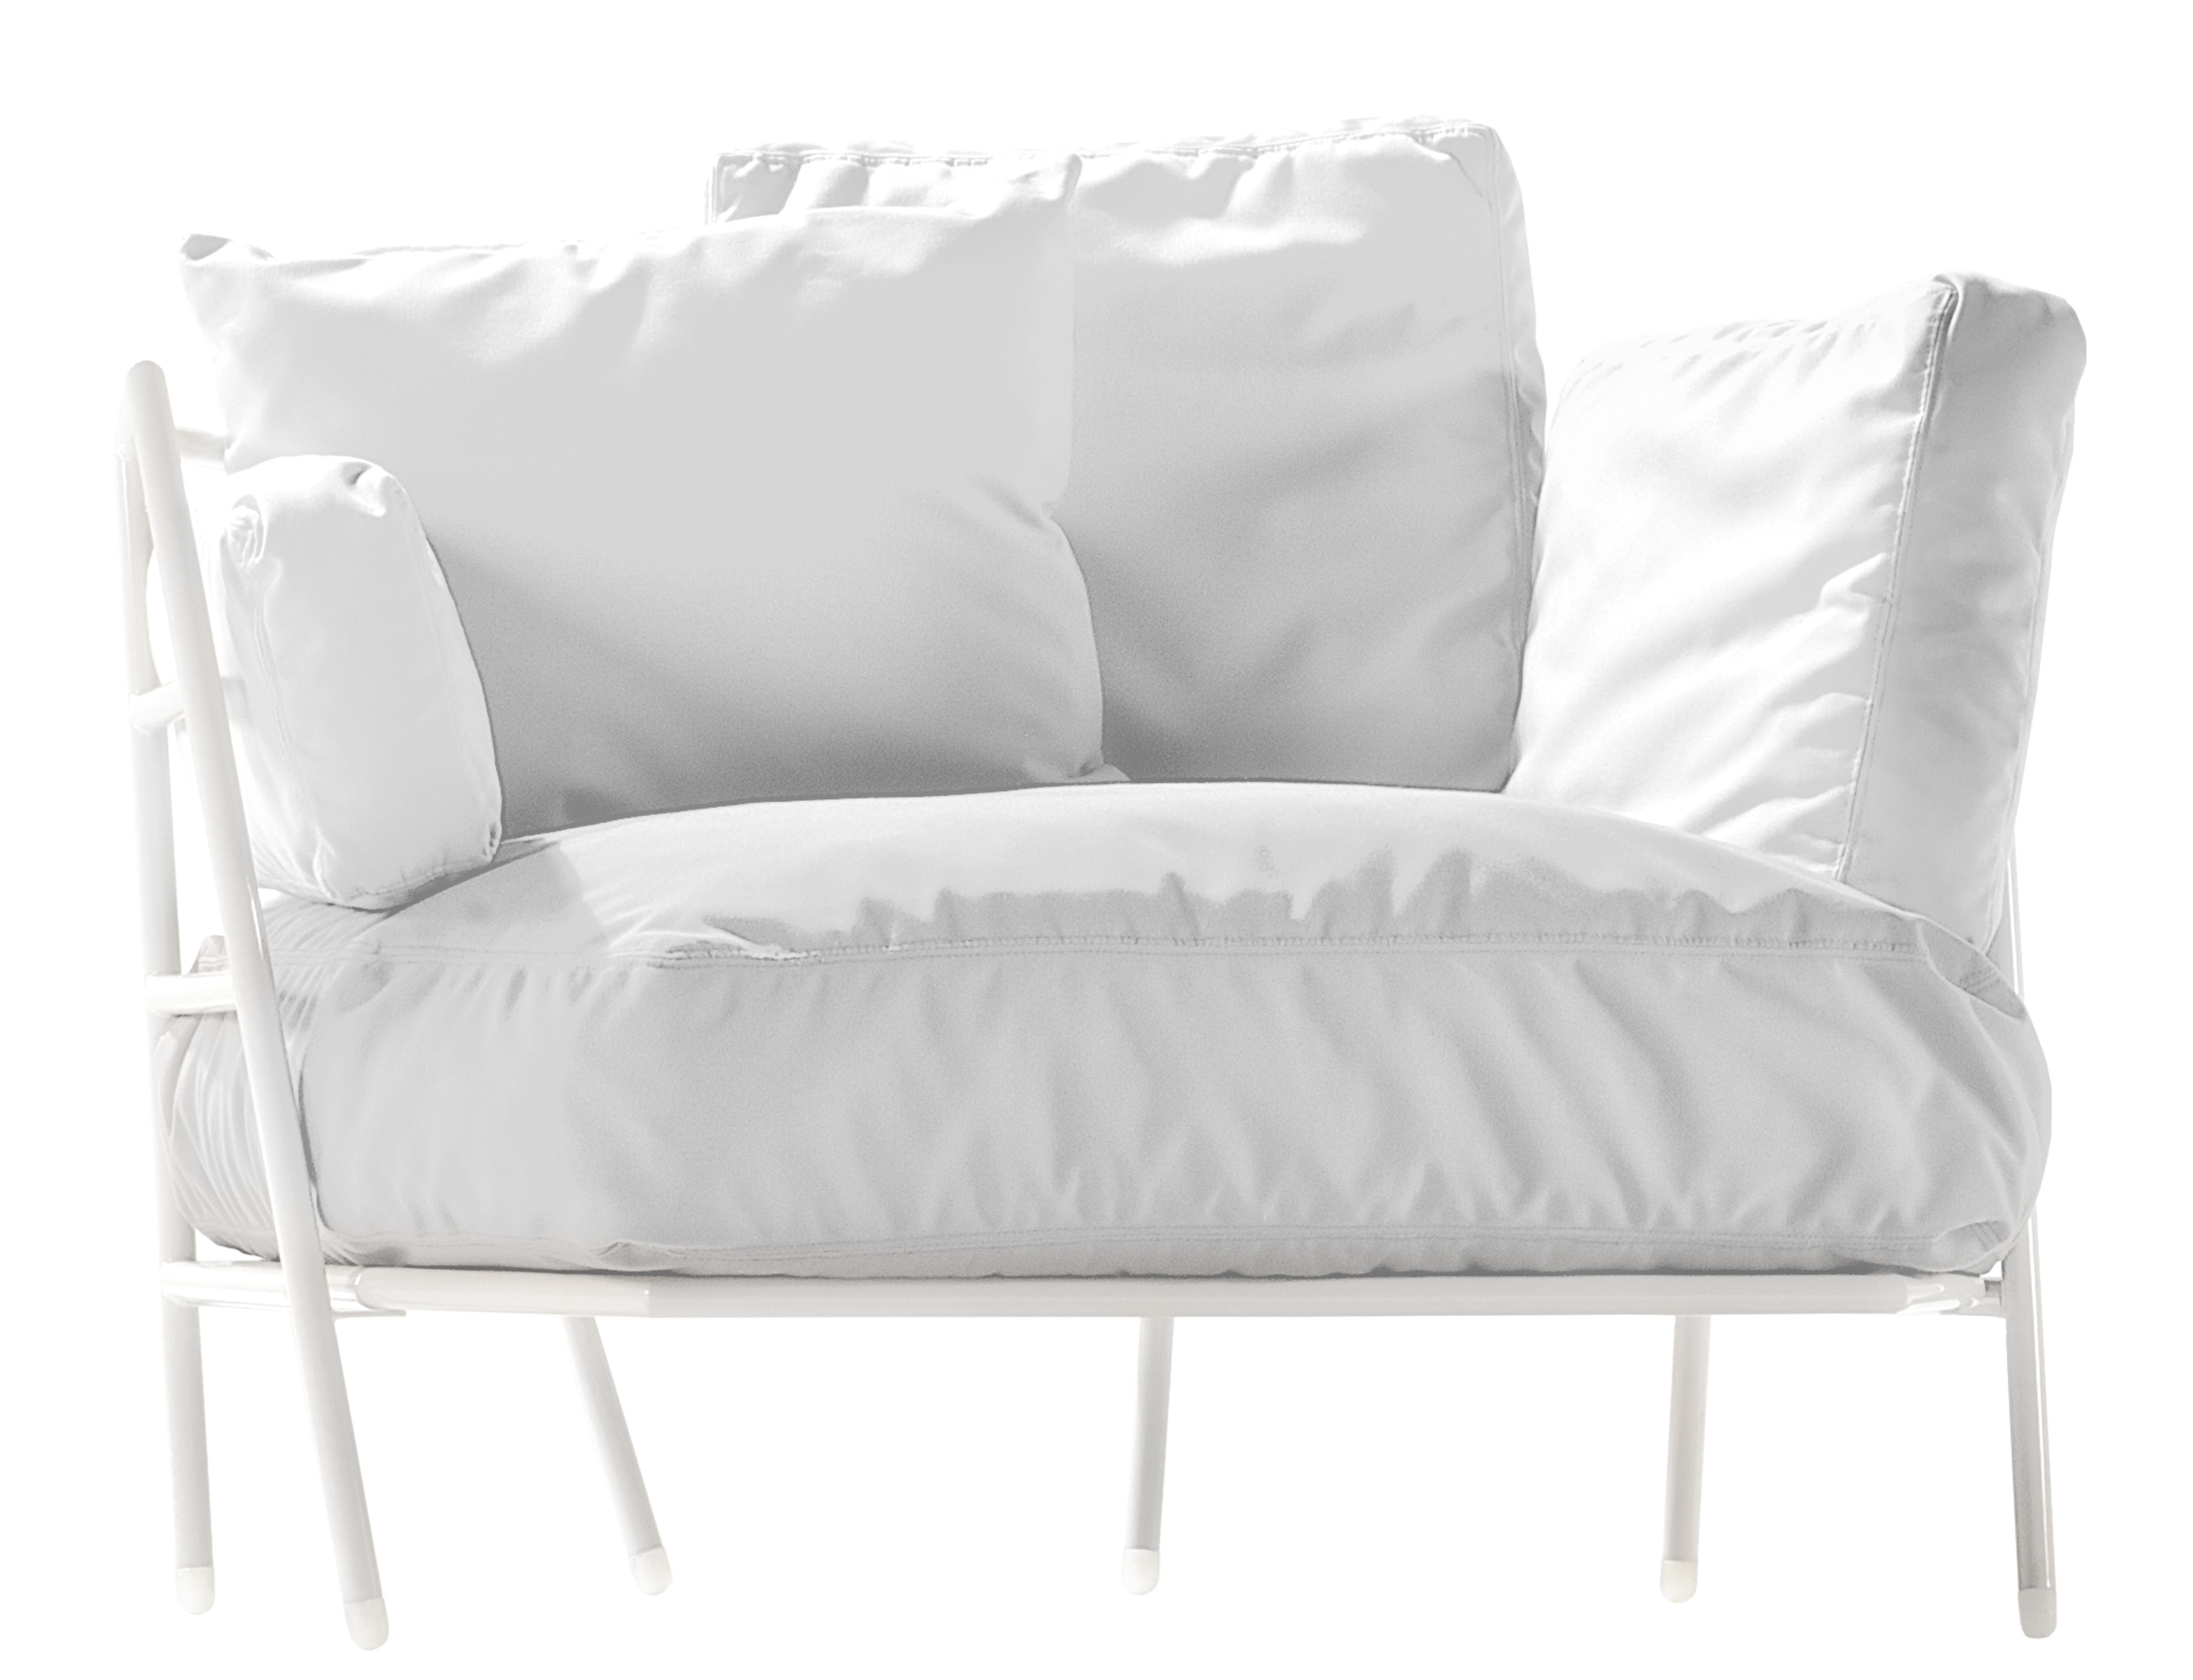 Furniture - Armchairs - Dehors Padded armchair - Outdoor by Alias - White structure / White cushions - Acrylic fabric, Lacquered steel